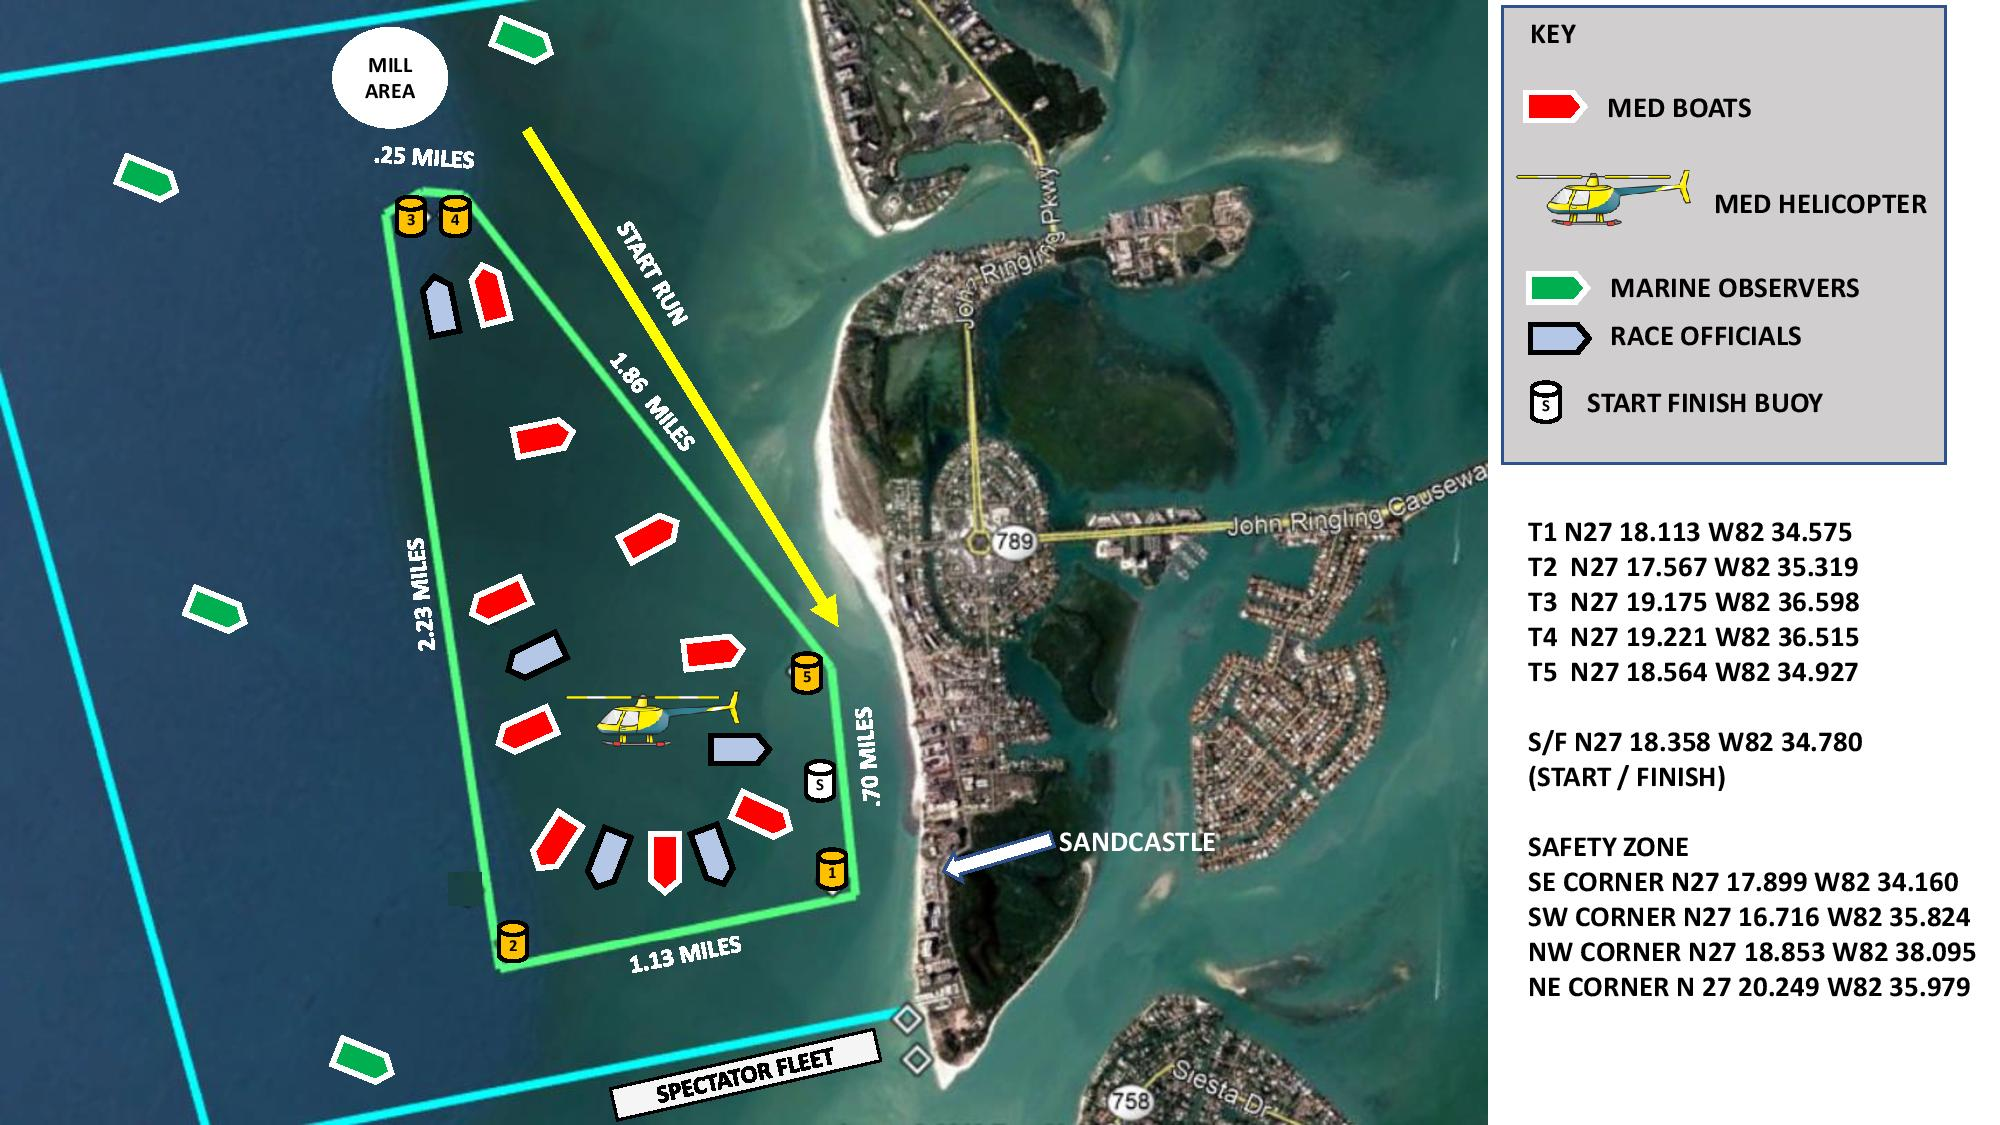 2019 Offshore Powerboats Course Map